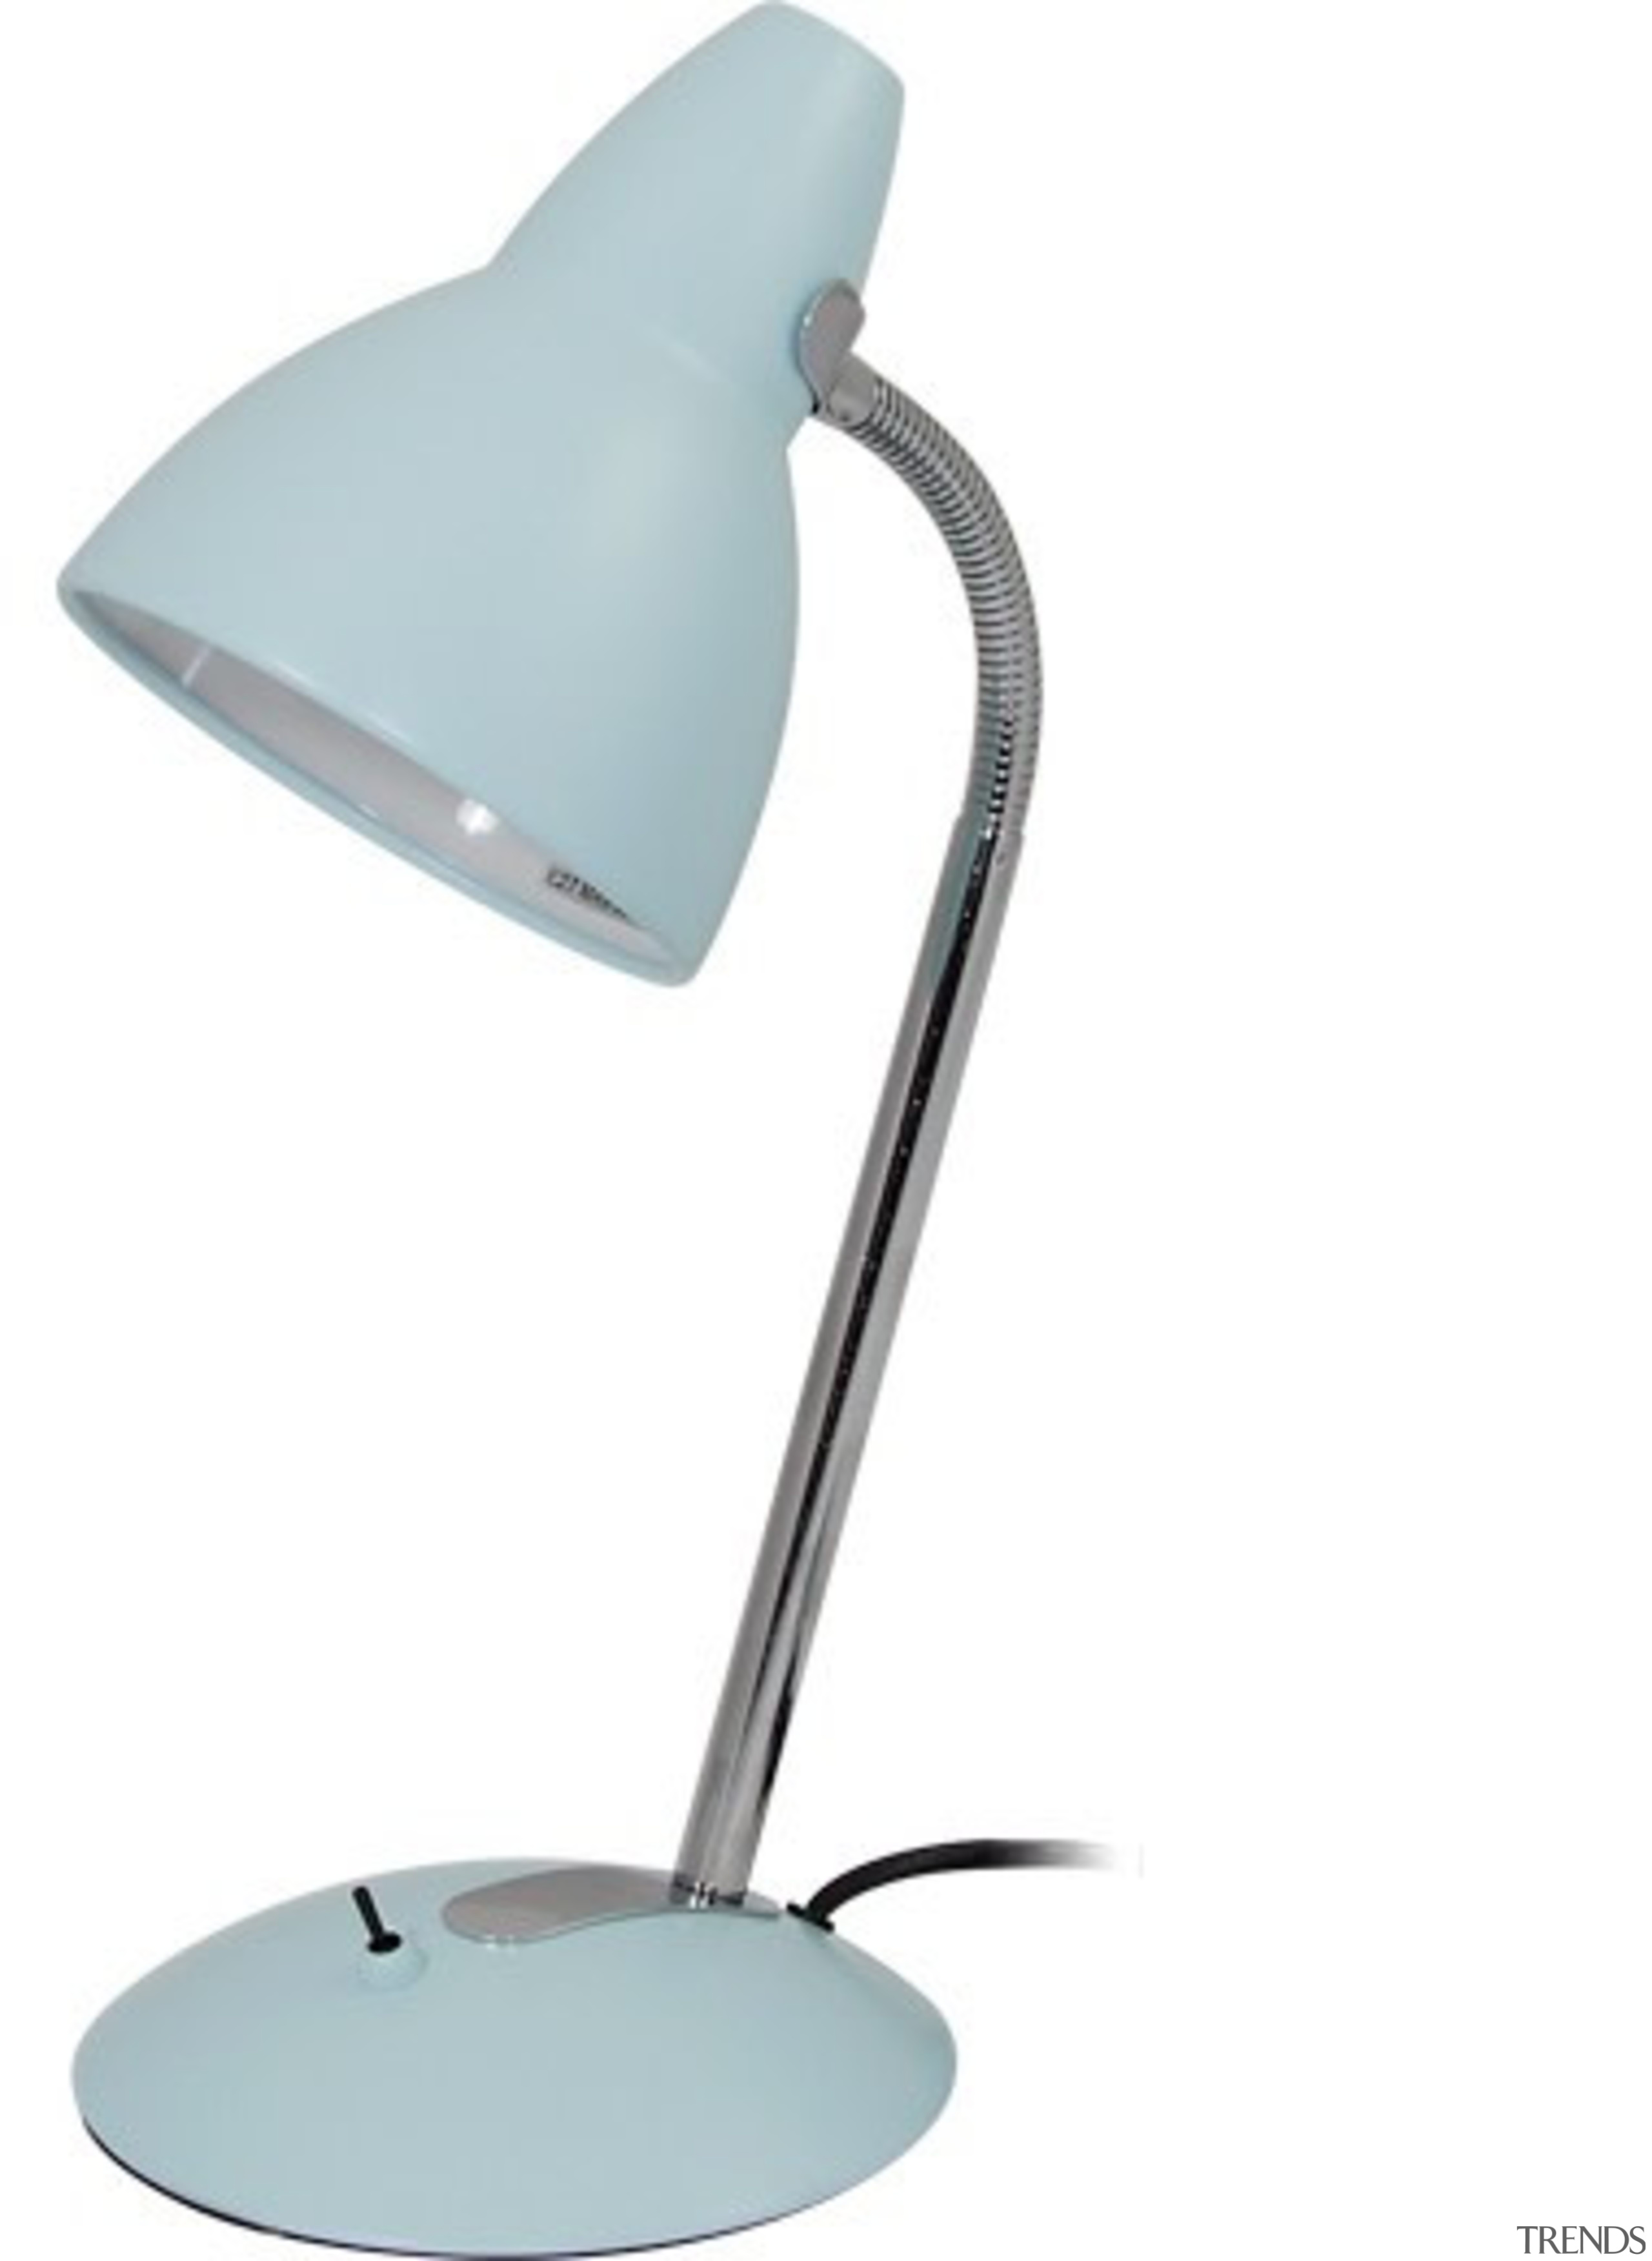 FeaturesA compact functional design that provides an efficient light fixture, lighting, product, product design, white